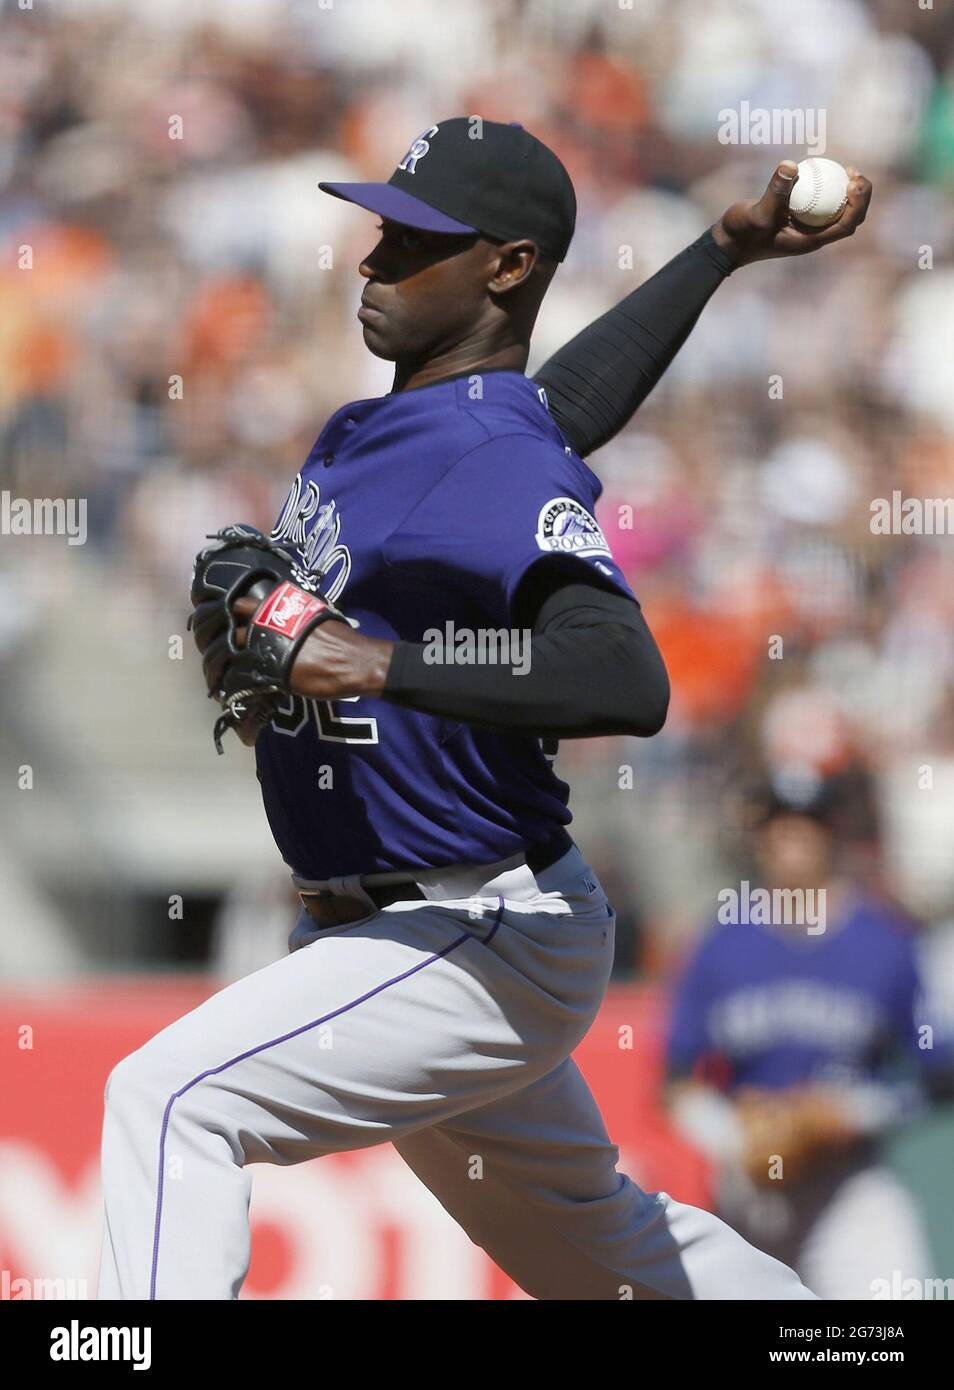 San Francisco, USA. 12th Apr, 2014. Colorado Rockies pitcher LaTroy Hawkins works in the ninth inning of a 1-0 win against the San Francisco Giants at AT&T Park in San Francisco on April 12, 2014. (Photo by Jim Gensheimer/Bay Area News Group/TNS/Sipa USA) Credit: Sipa USA/Alamy Live News Stock Photo